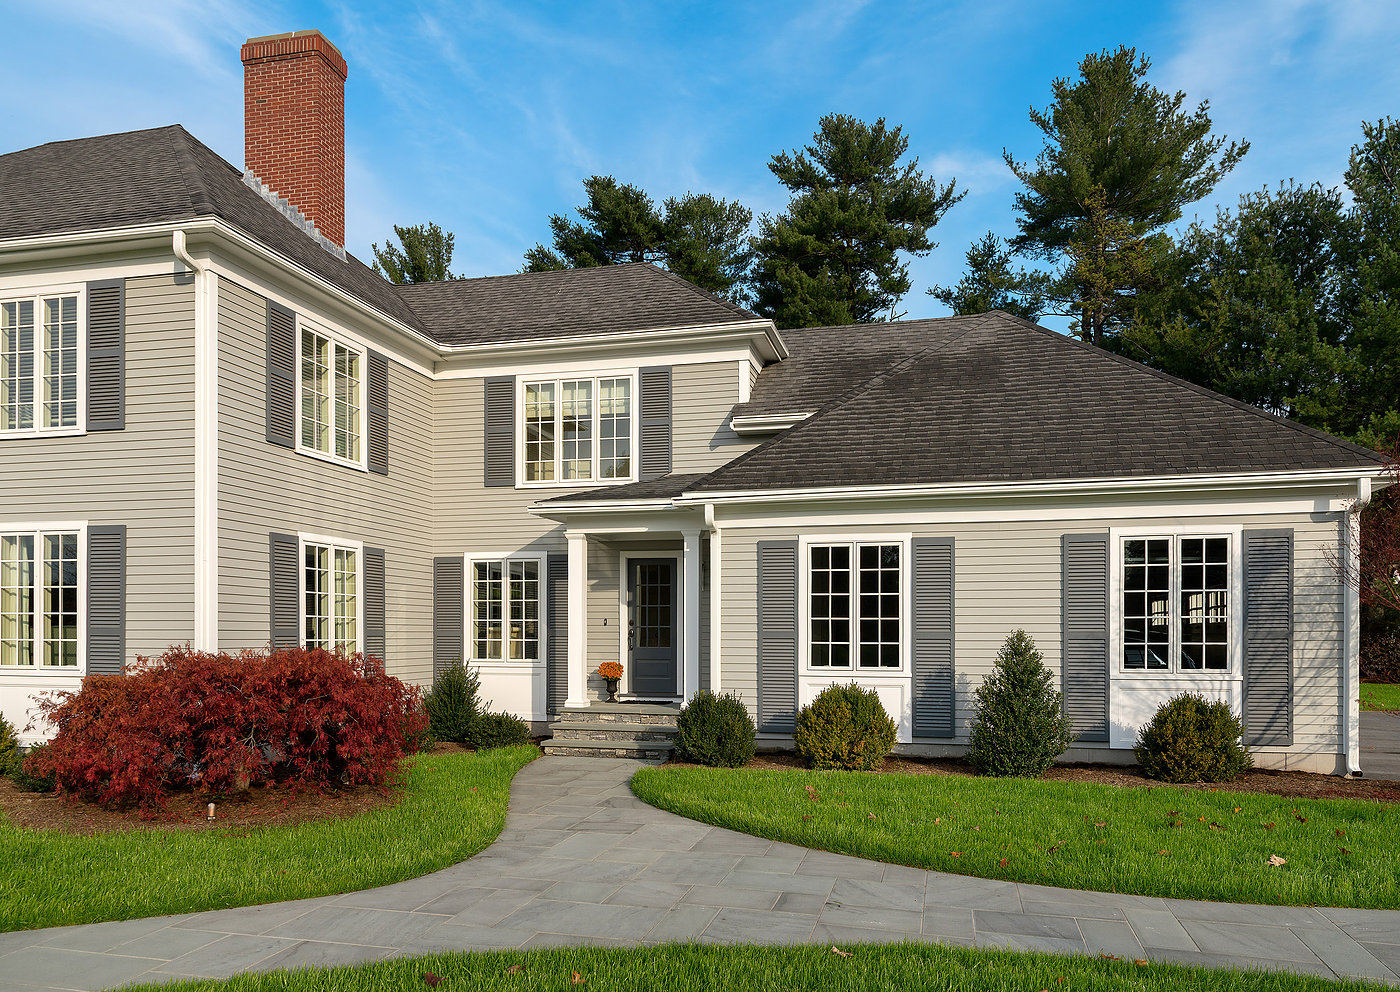 How to Prioritize Home Renovations in a Multi-Stage Project